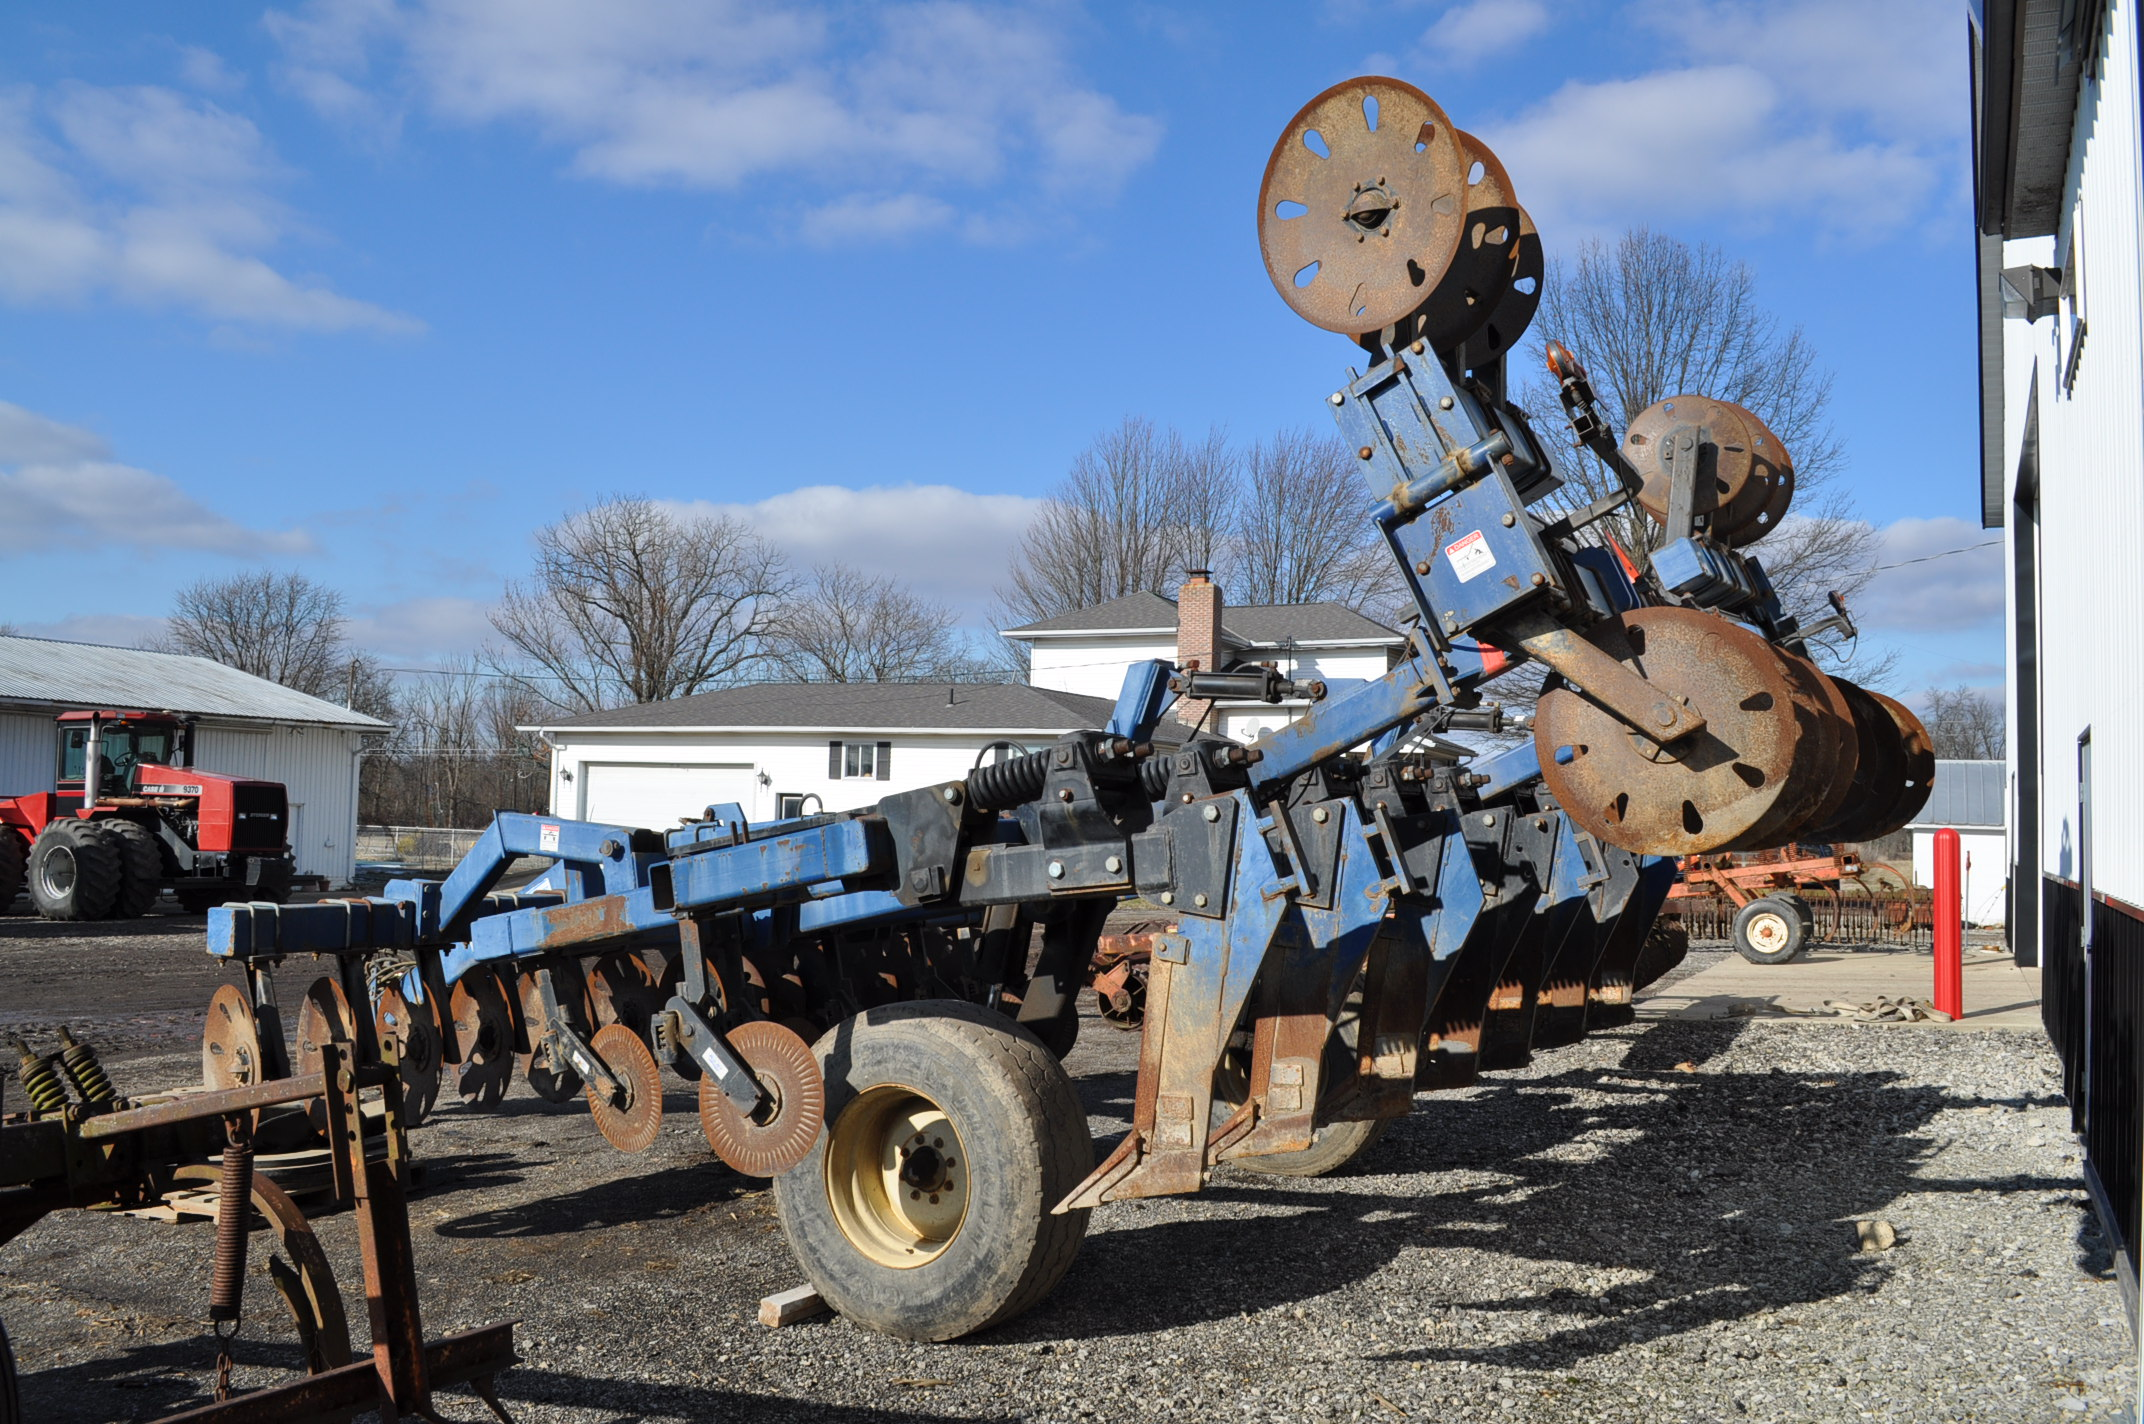 Blu-Jet Tillage Pro 7 shank inline ripper, front and rear hyd adjustable discs, sells with extra - Image 2 of 18